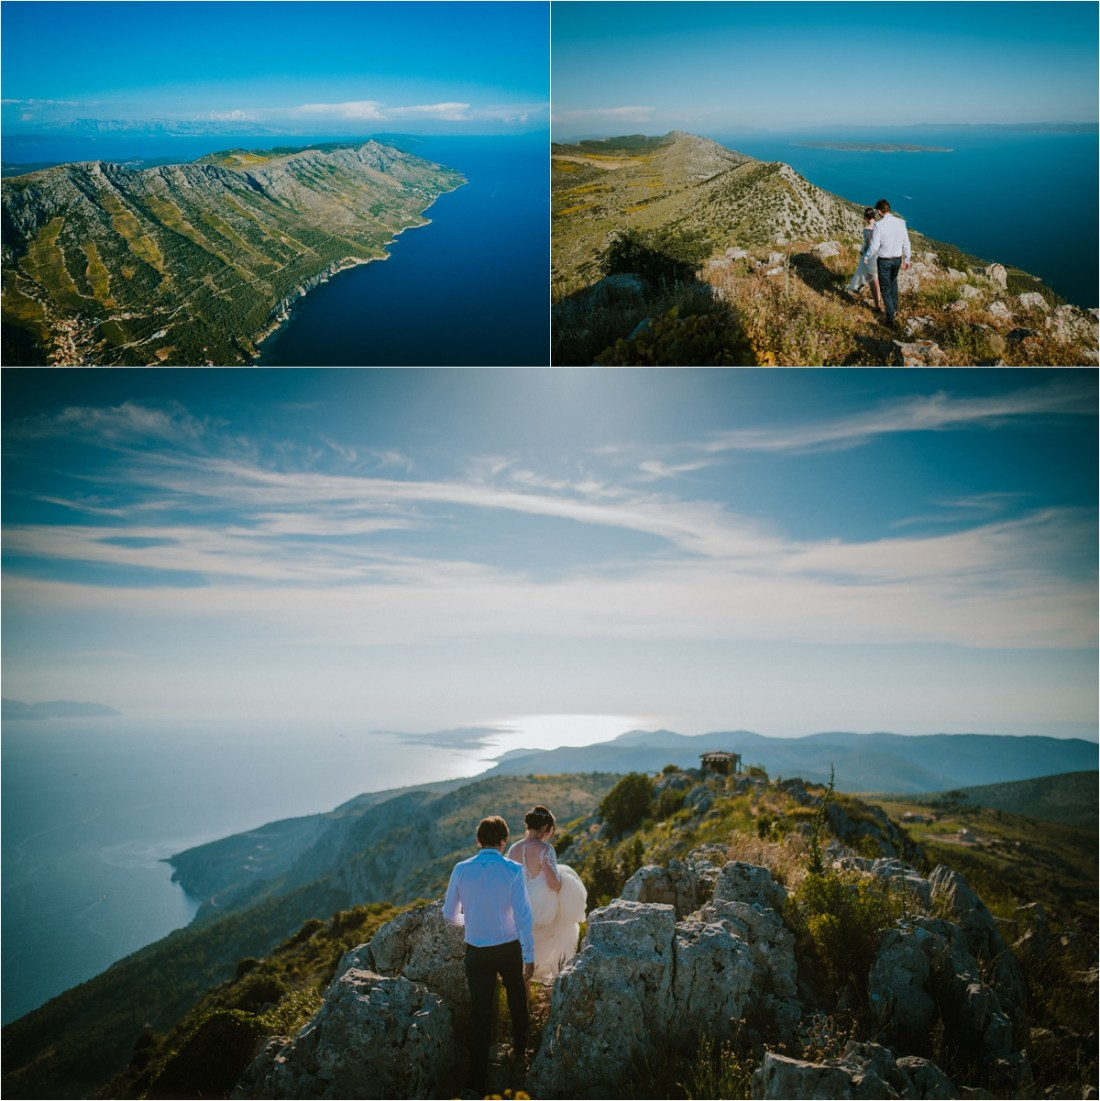 Elopement Croatia, A Summer Mountain Elopement In Croatia